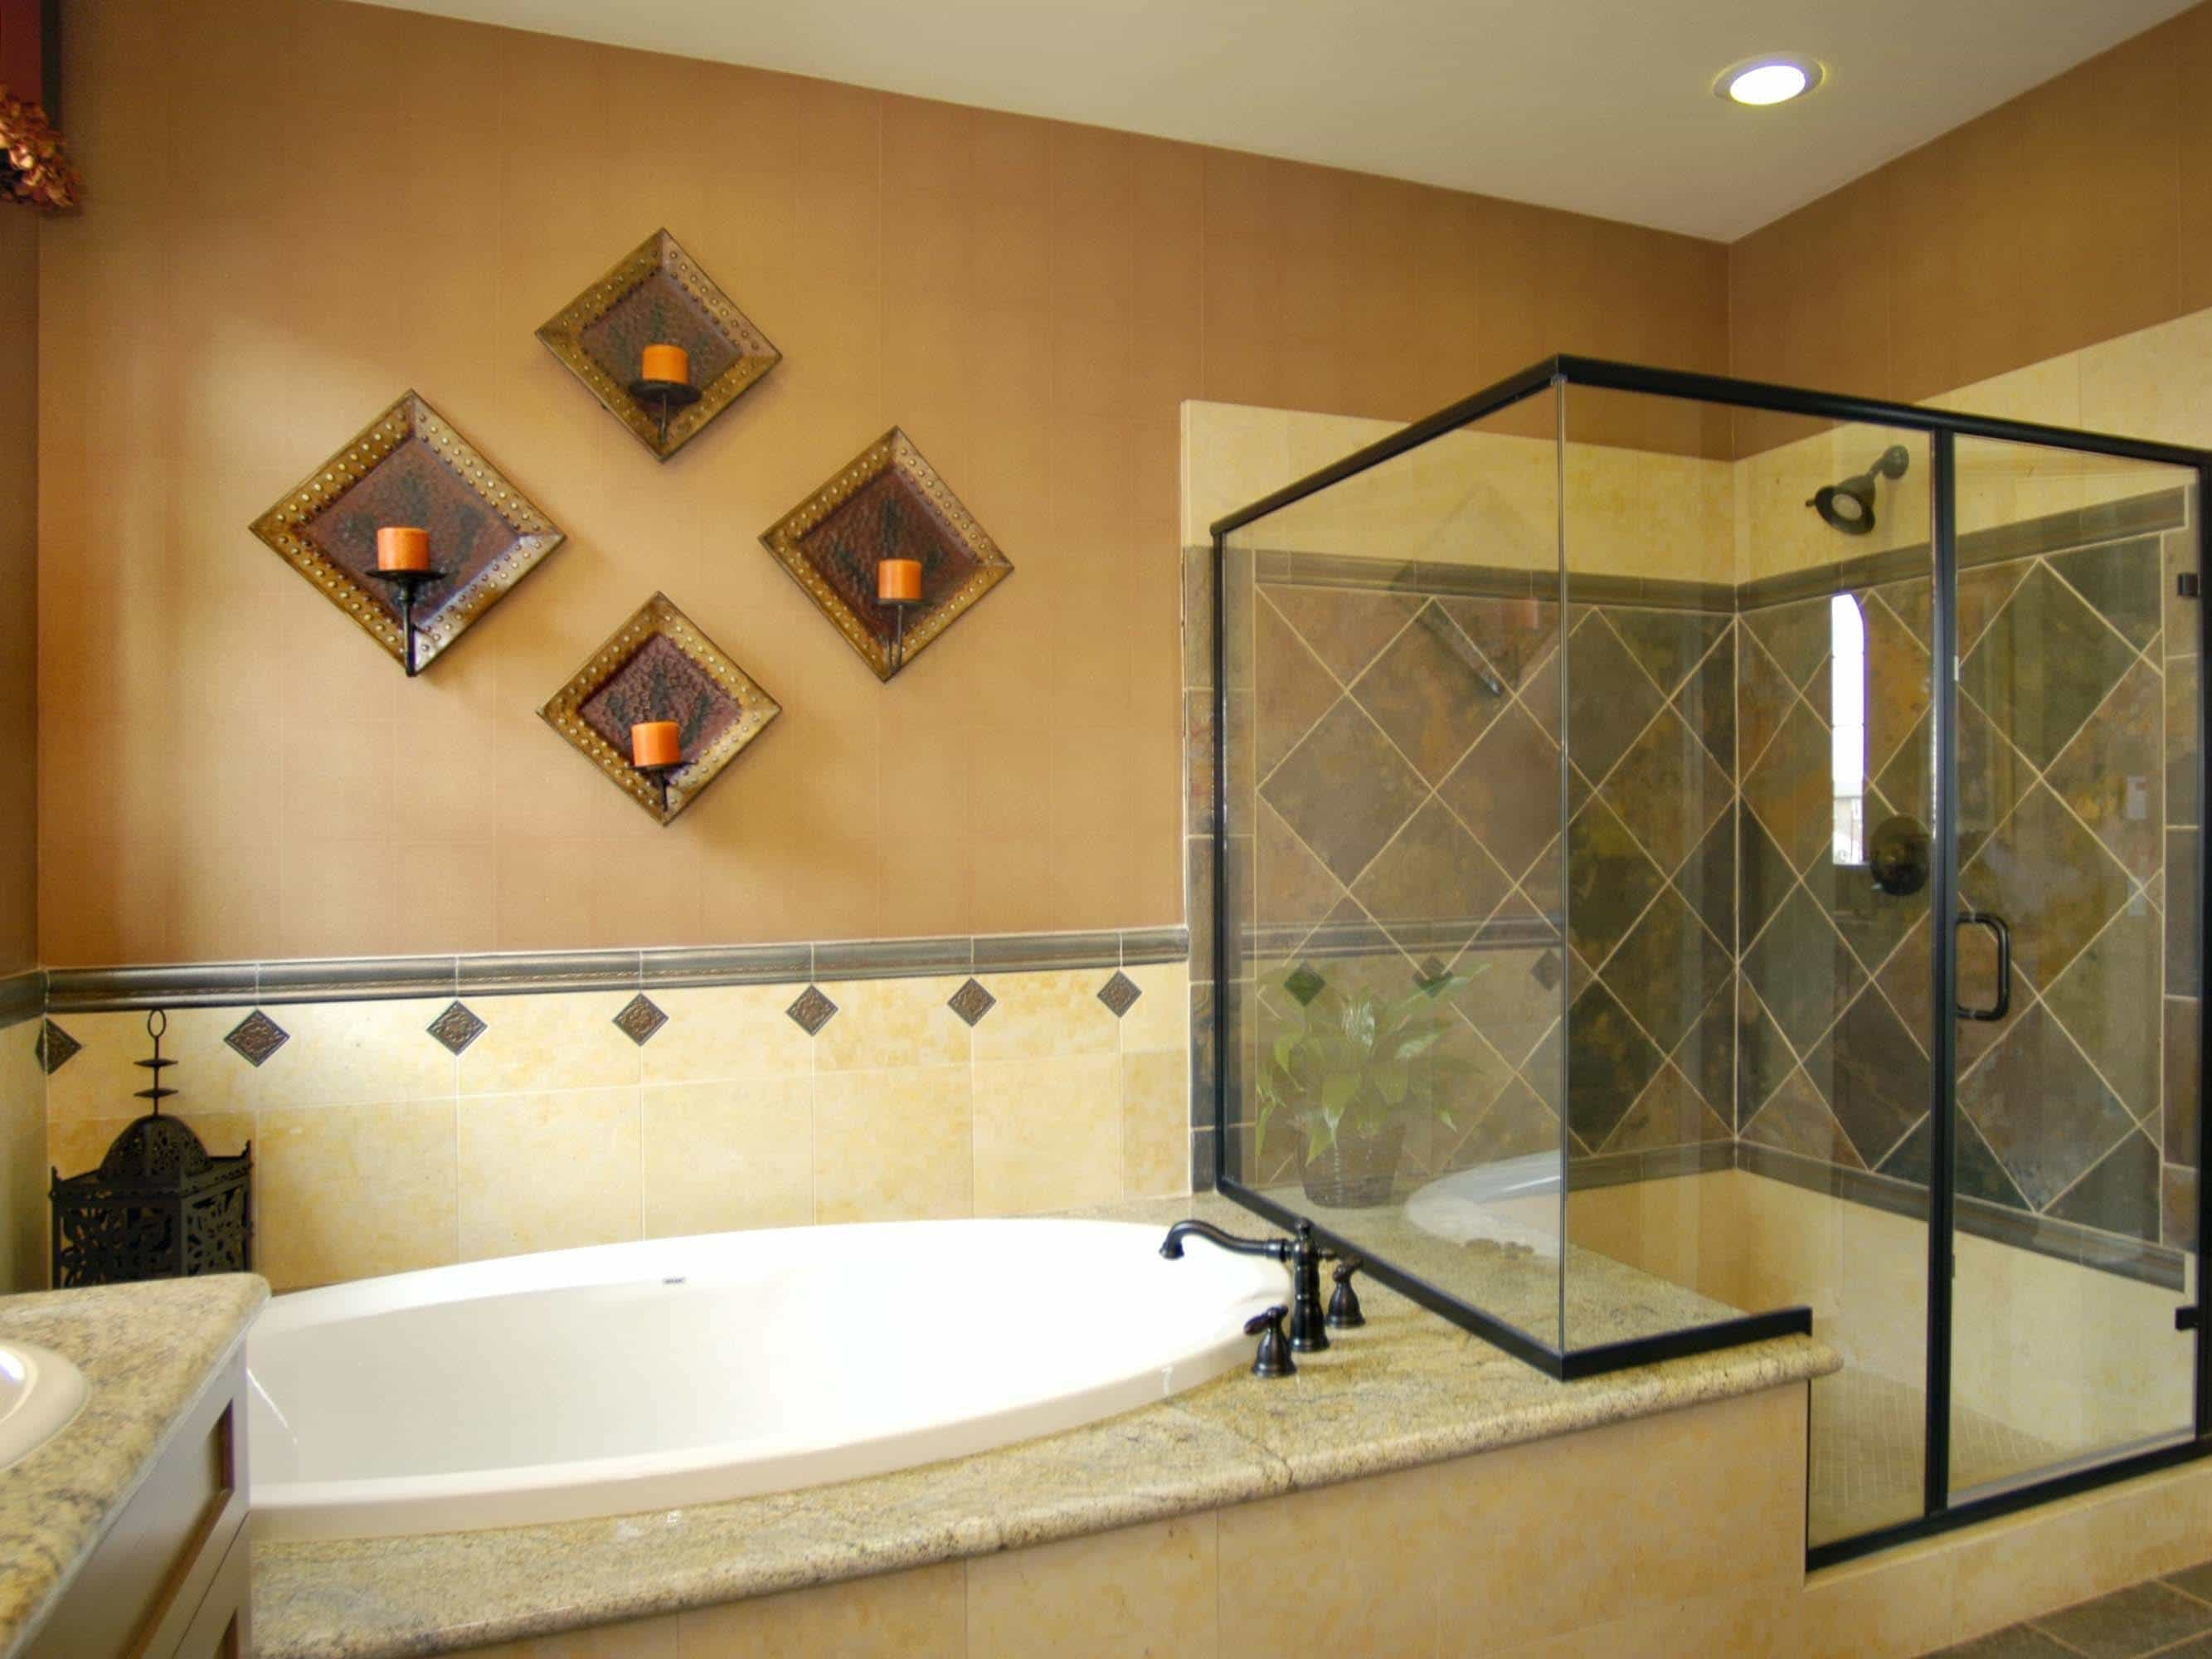 Old World Style Shower And Tub Combo (Image 13 of 16)